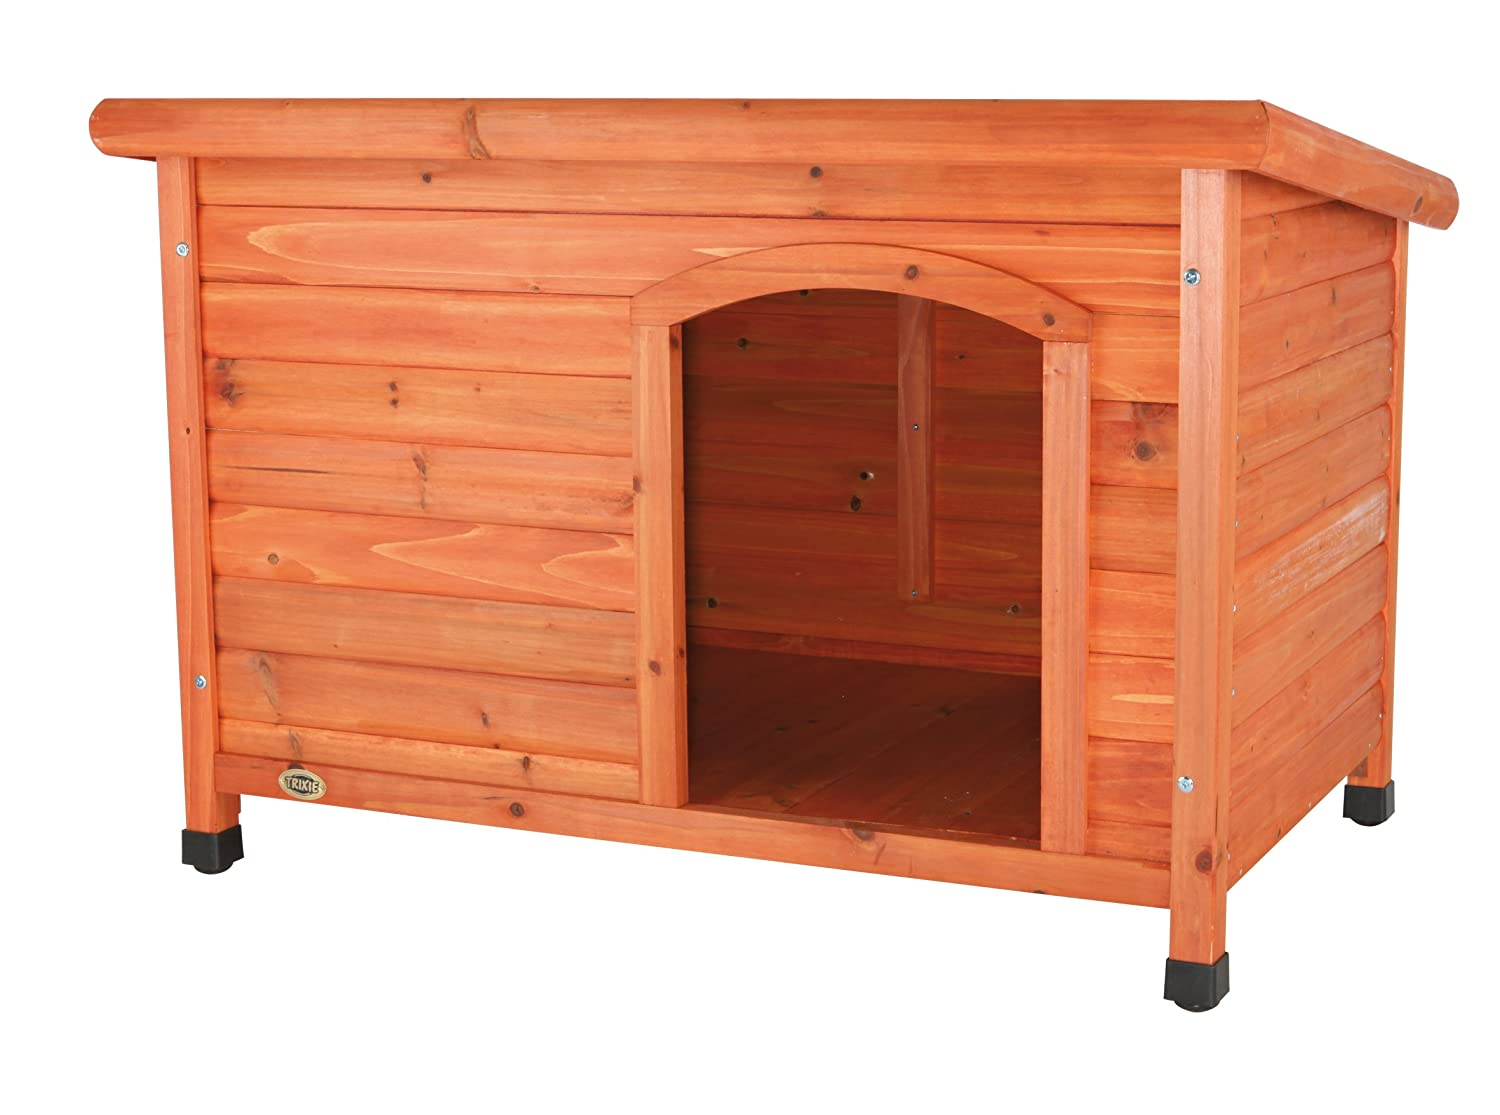 TRIXIE Dog Club House, Large $150.89